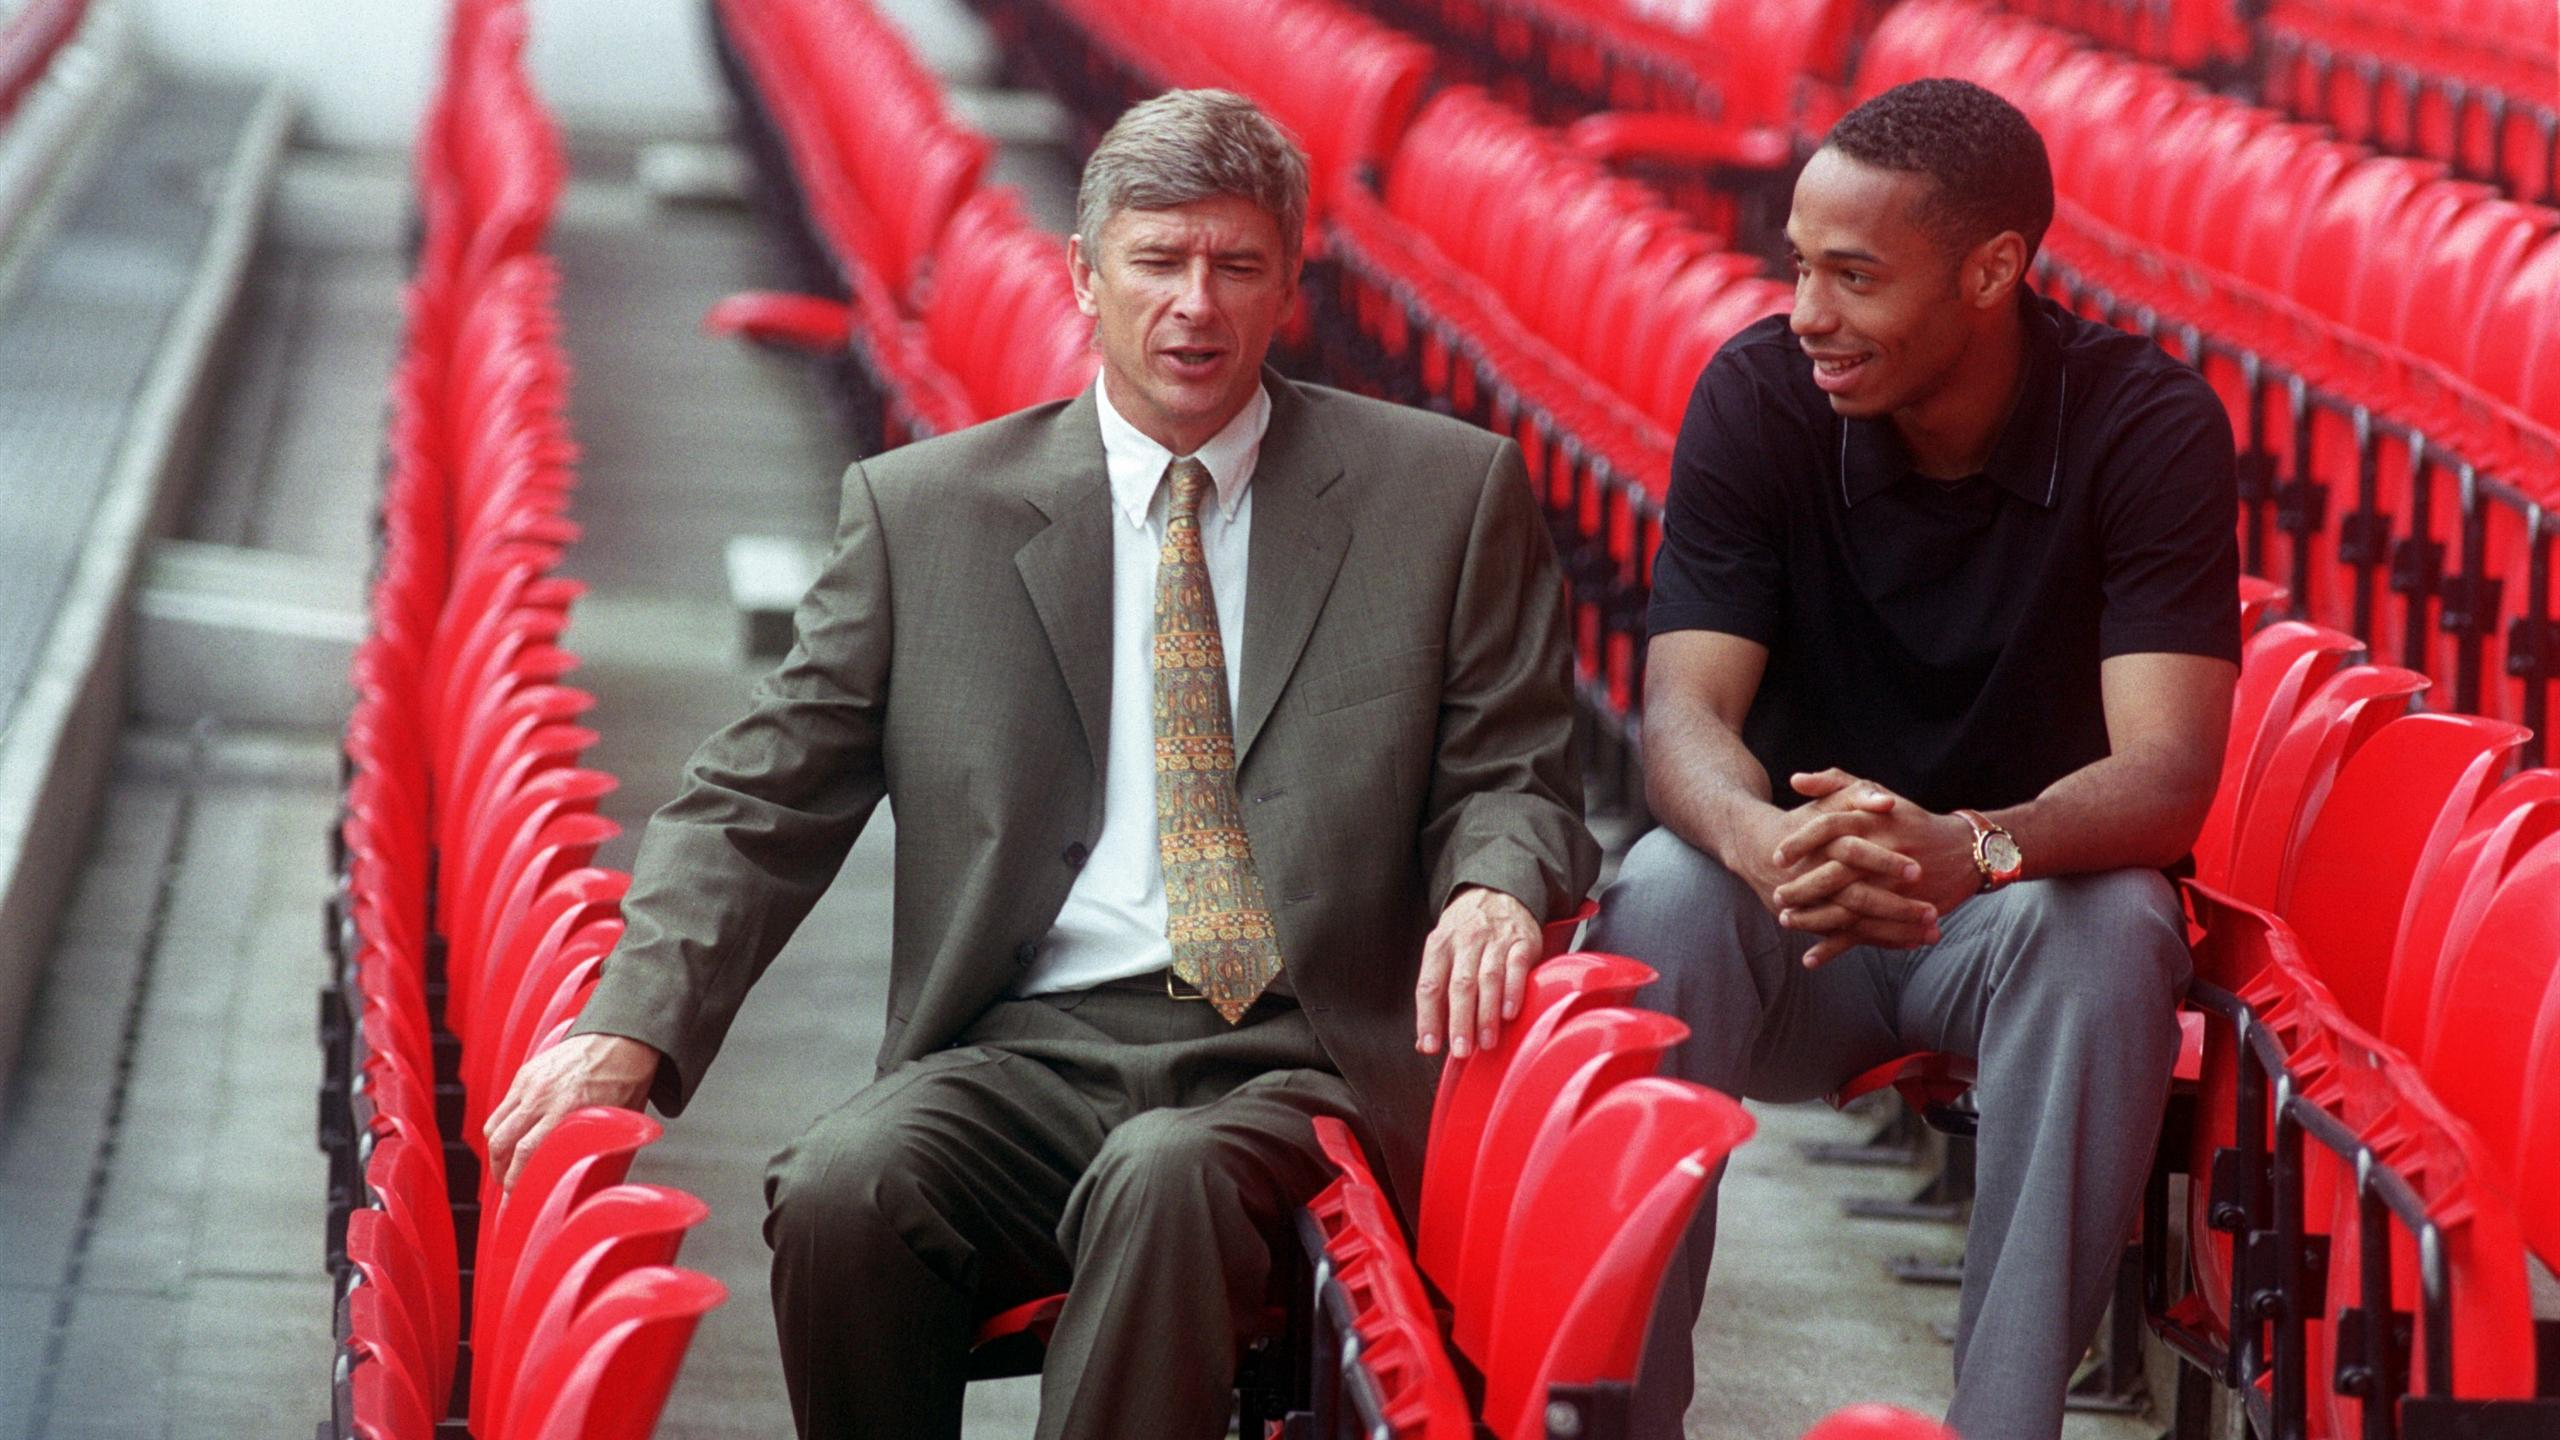 Arsenal's Thierry Henry & his new manager Arsene Wenger pose for photographs, sitting in the stand at Highbury